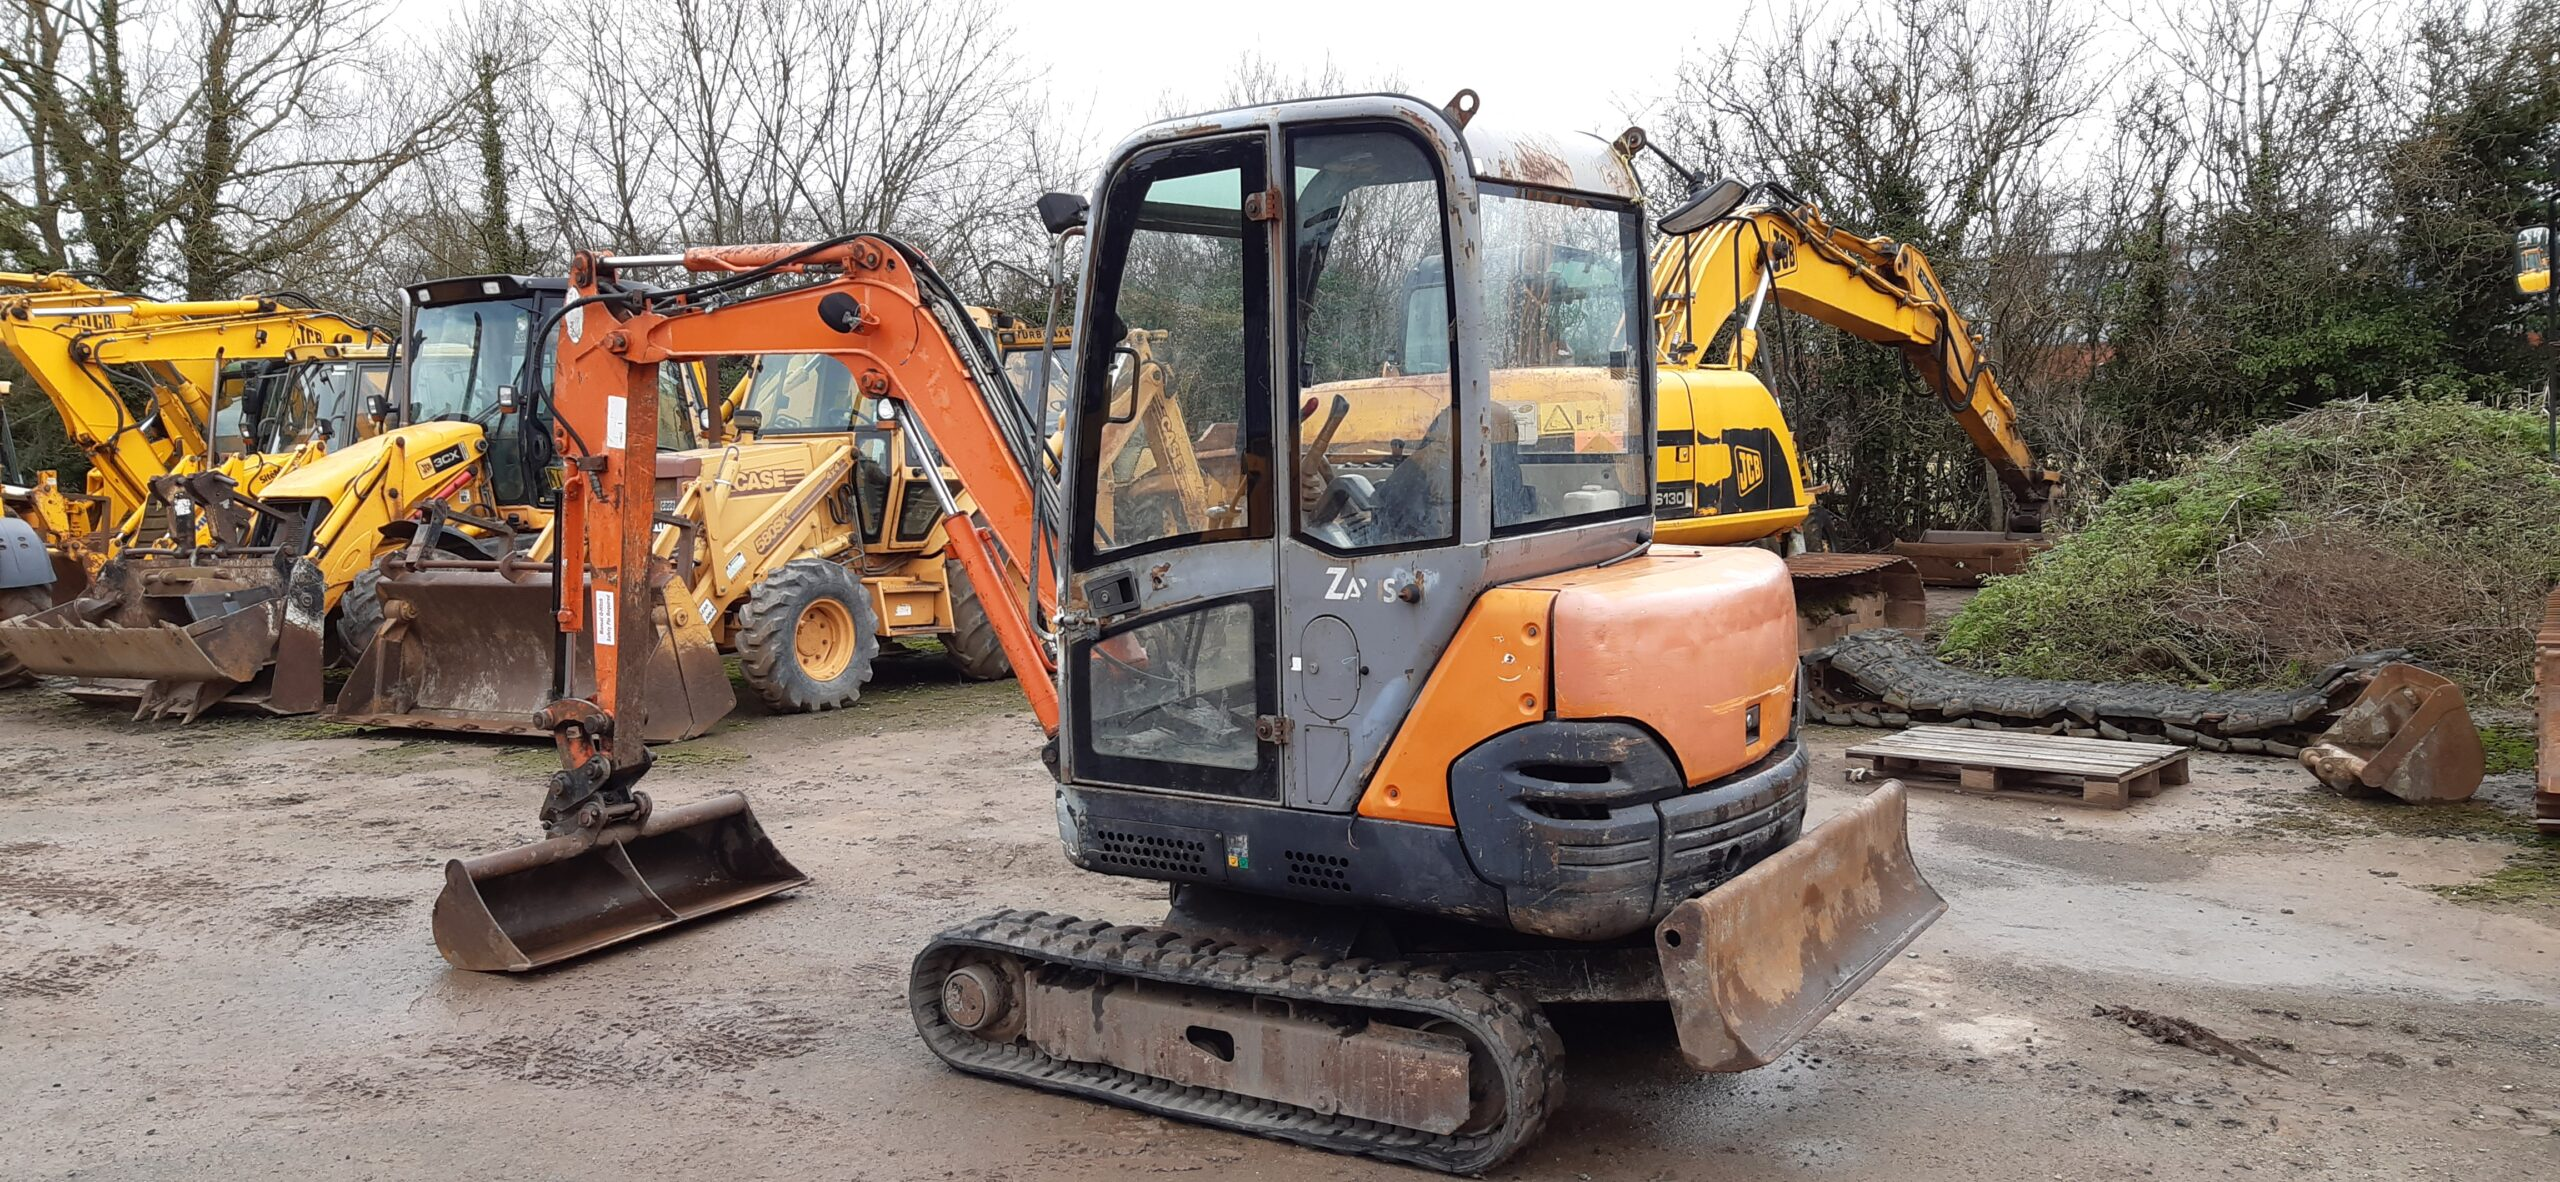 SOLD - 2007 Hitachi ZX25CLR,Manual Quick hitch,Good rubber tracks,4700 hours - SOLD Image